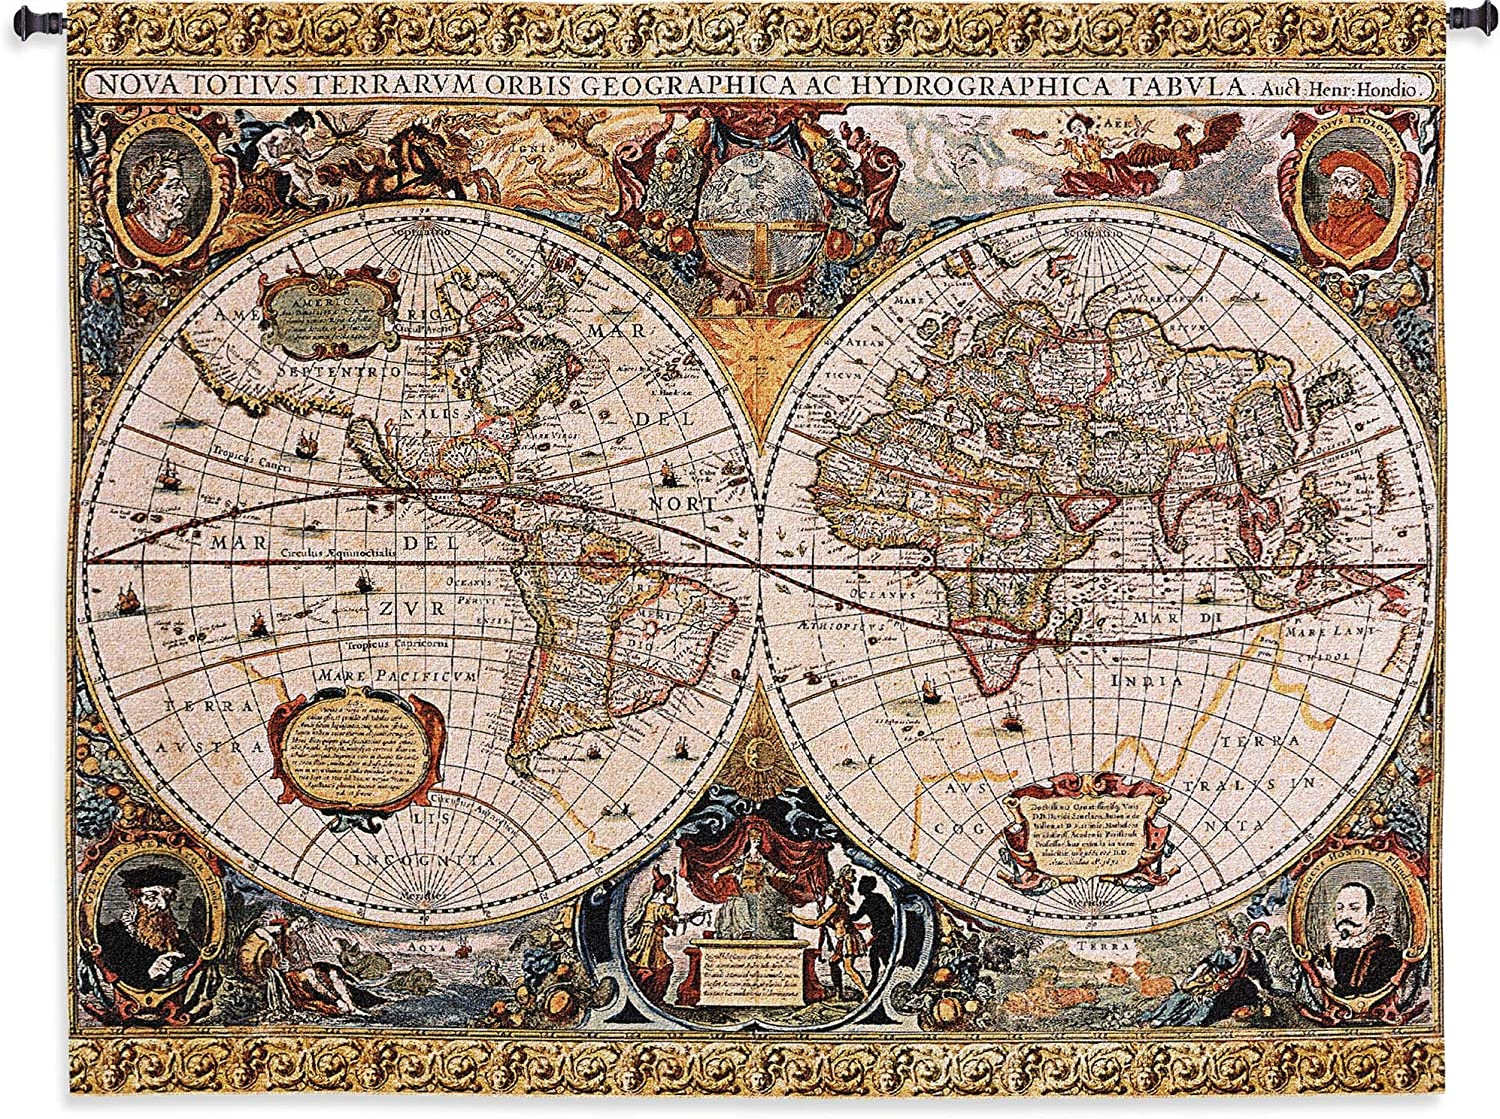 Antique Old World Map Geographica by Jan Janssonius | Woven Tapestry Wall Art Hanging | Beautiful Rustic Globe with Luxurious Mythology Designs | 100% Cotton USA Size 67x53